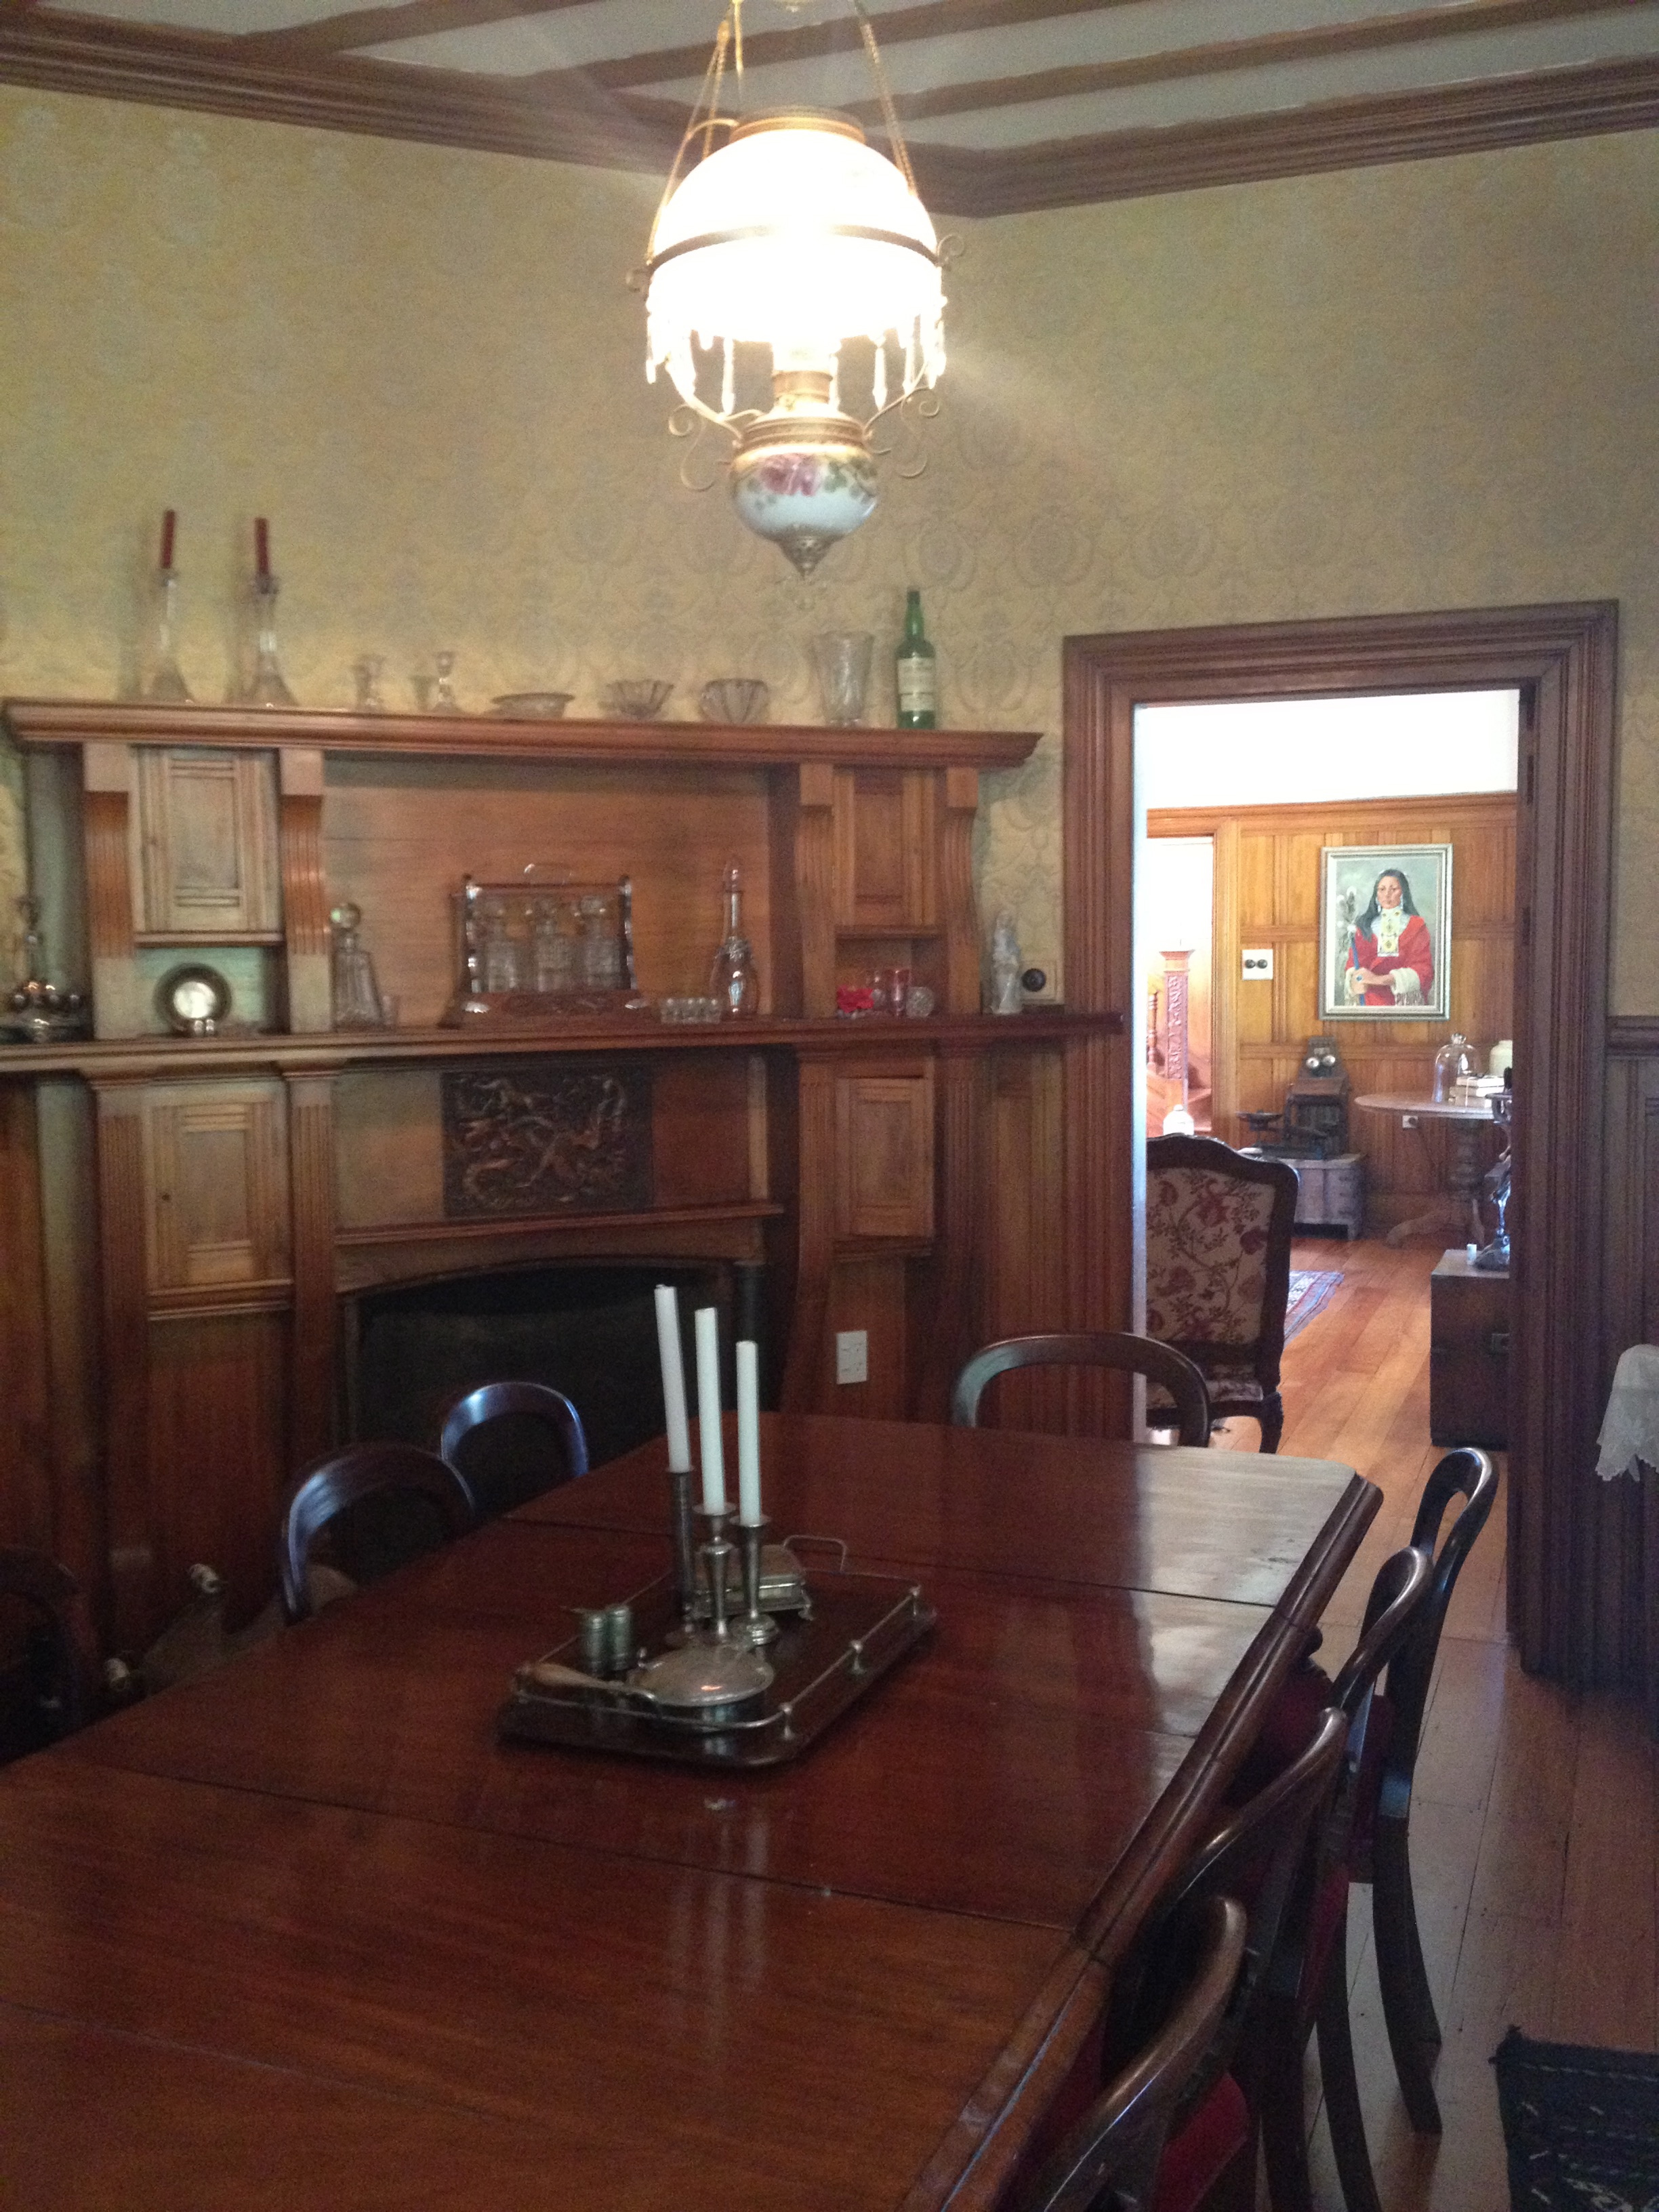 A victorian dining room awaits